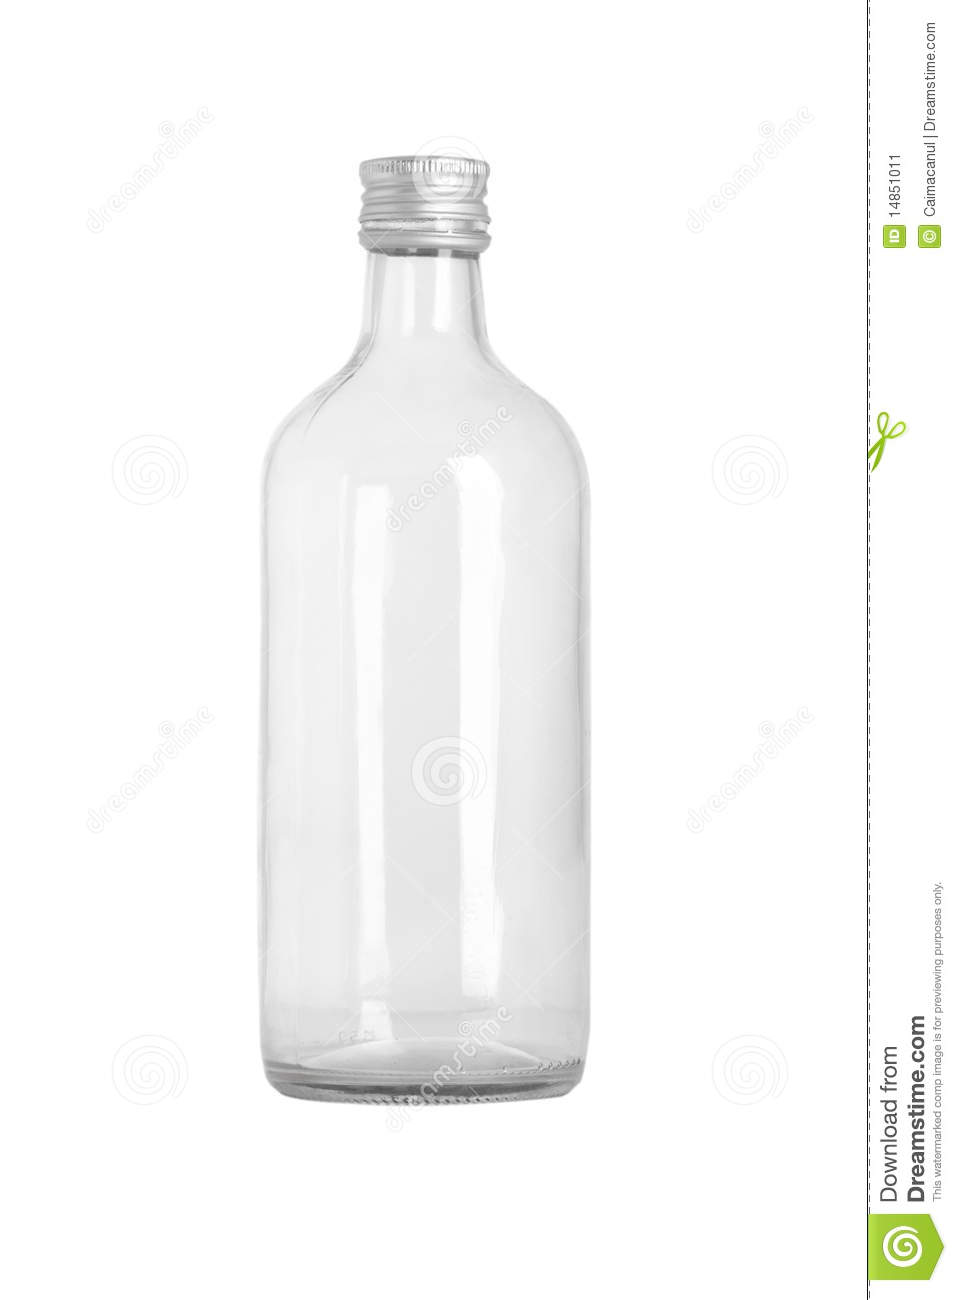 Front View Of Transparent Glass Bottle Stock Image Image